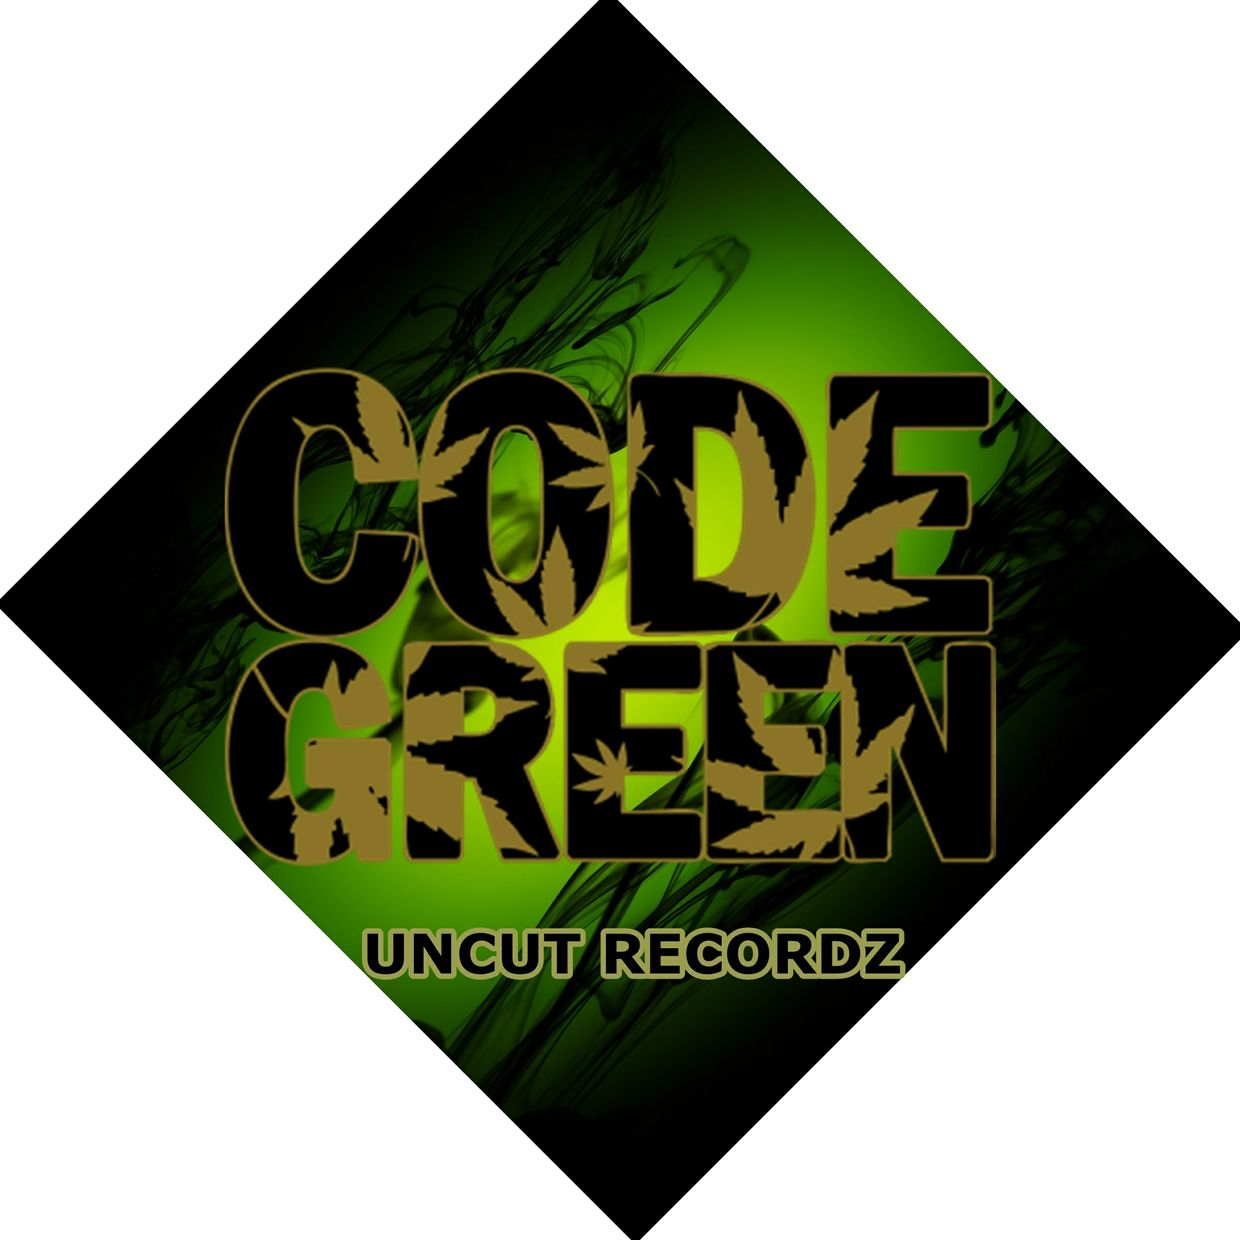 Uncut Recordz - Higher Meditation [Code Green - EP] - SINGLE